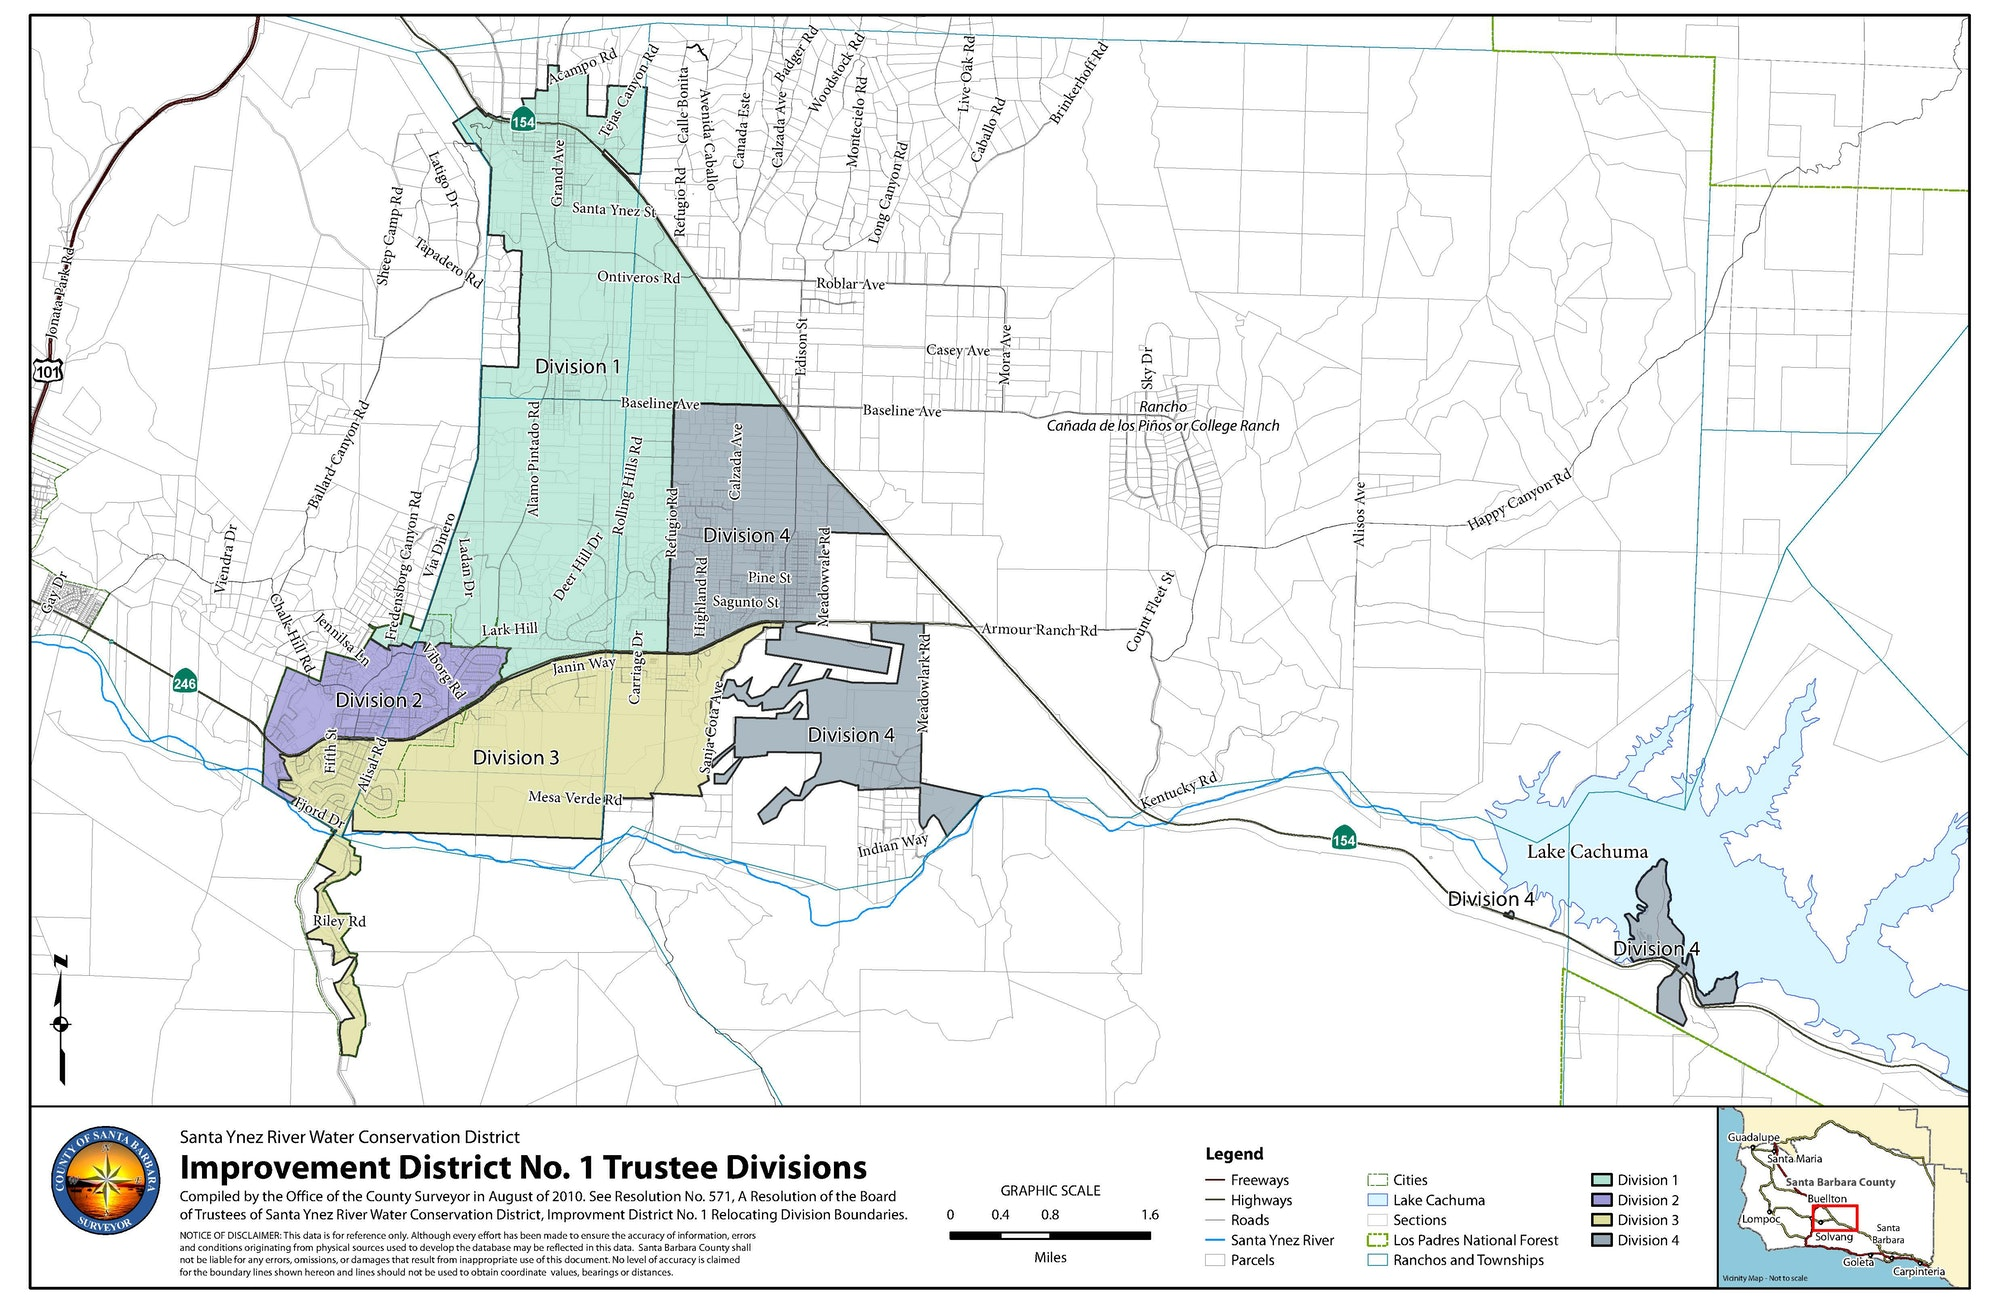 Trustee Division Map of SYRWCD Improvement District No. 1